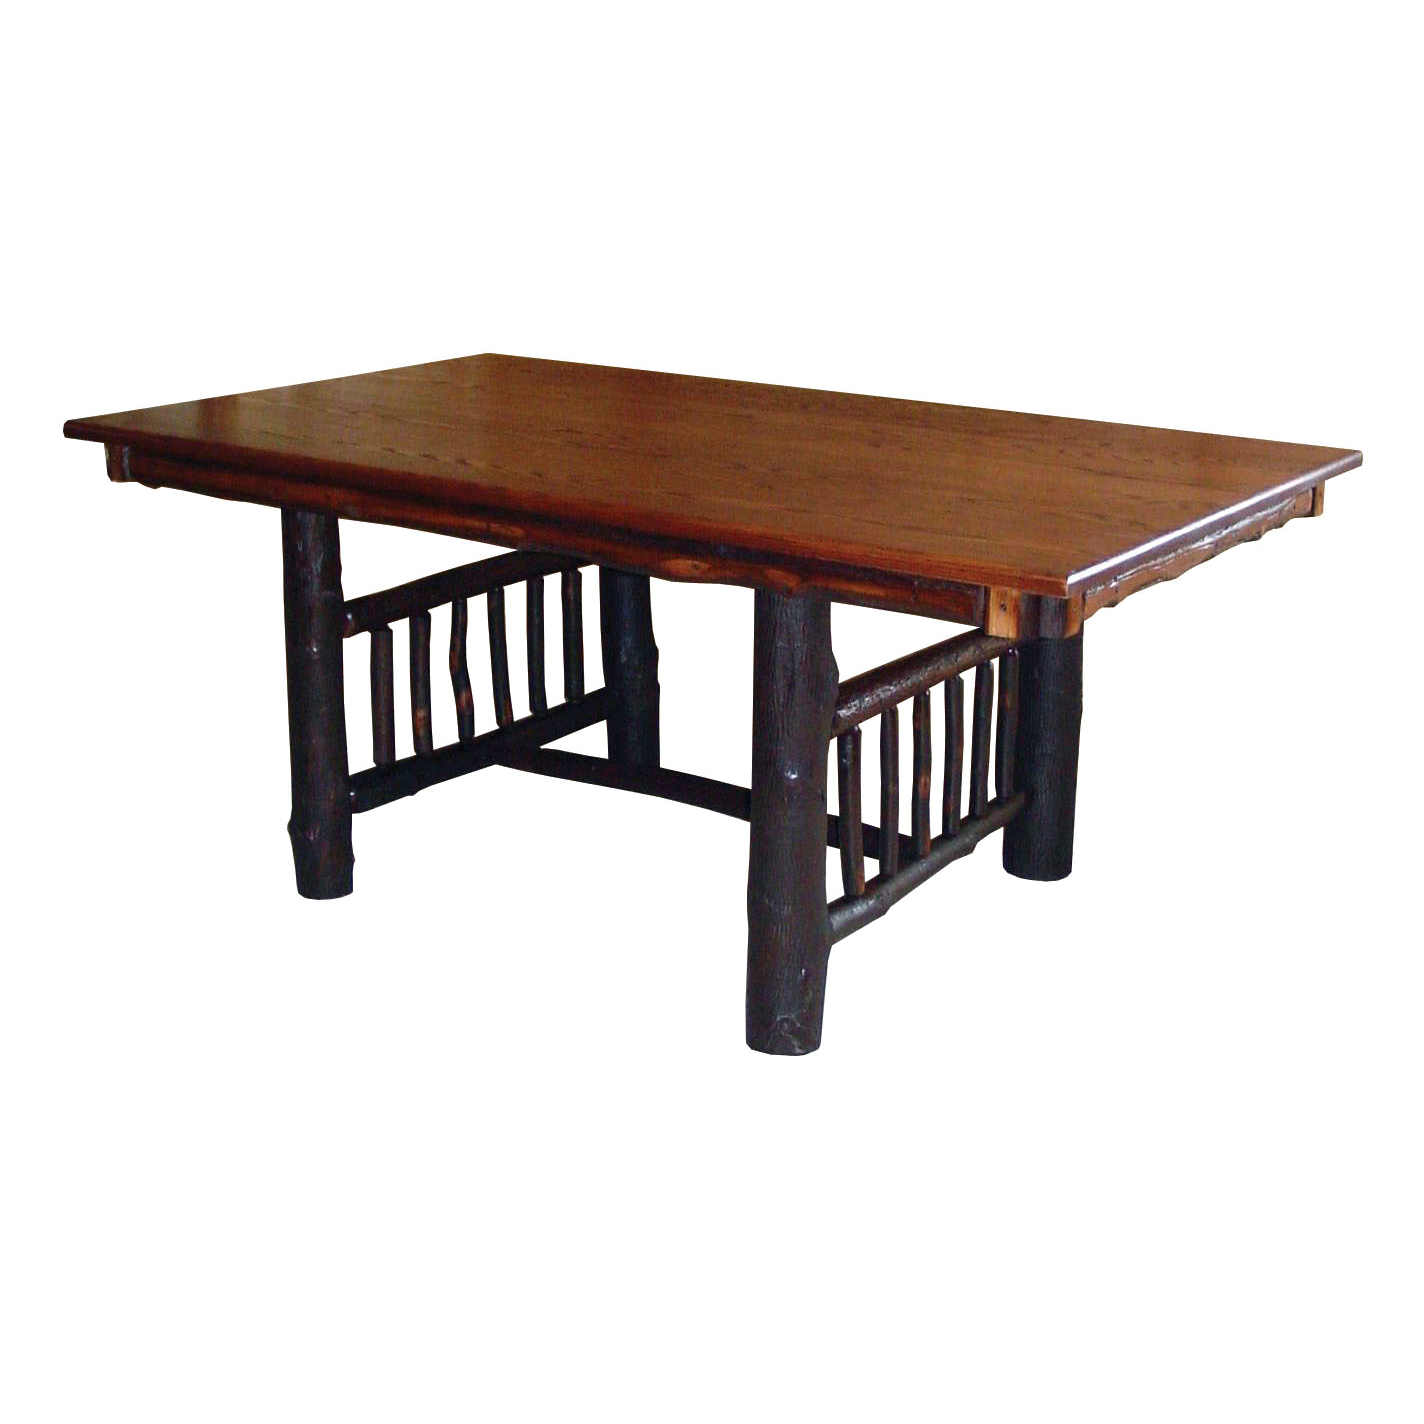 211 Rustic Mission Trestle Table